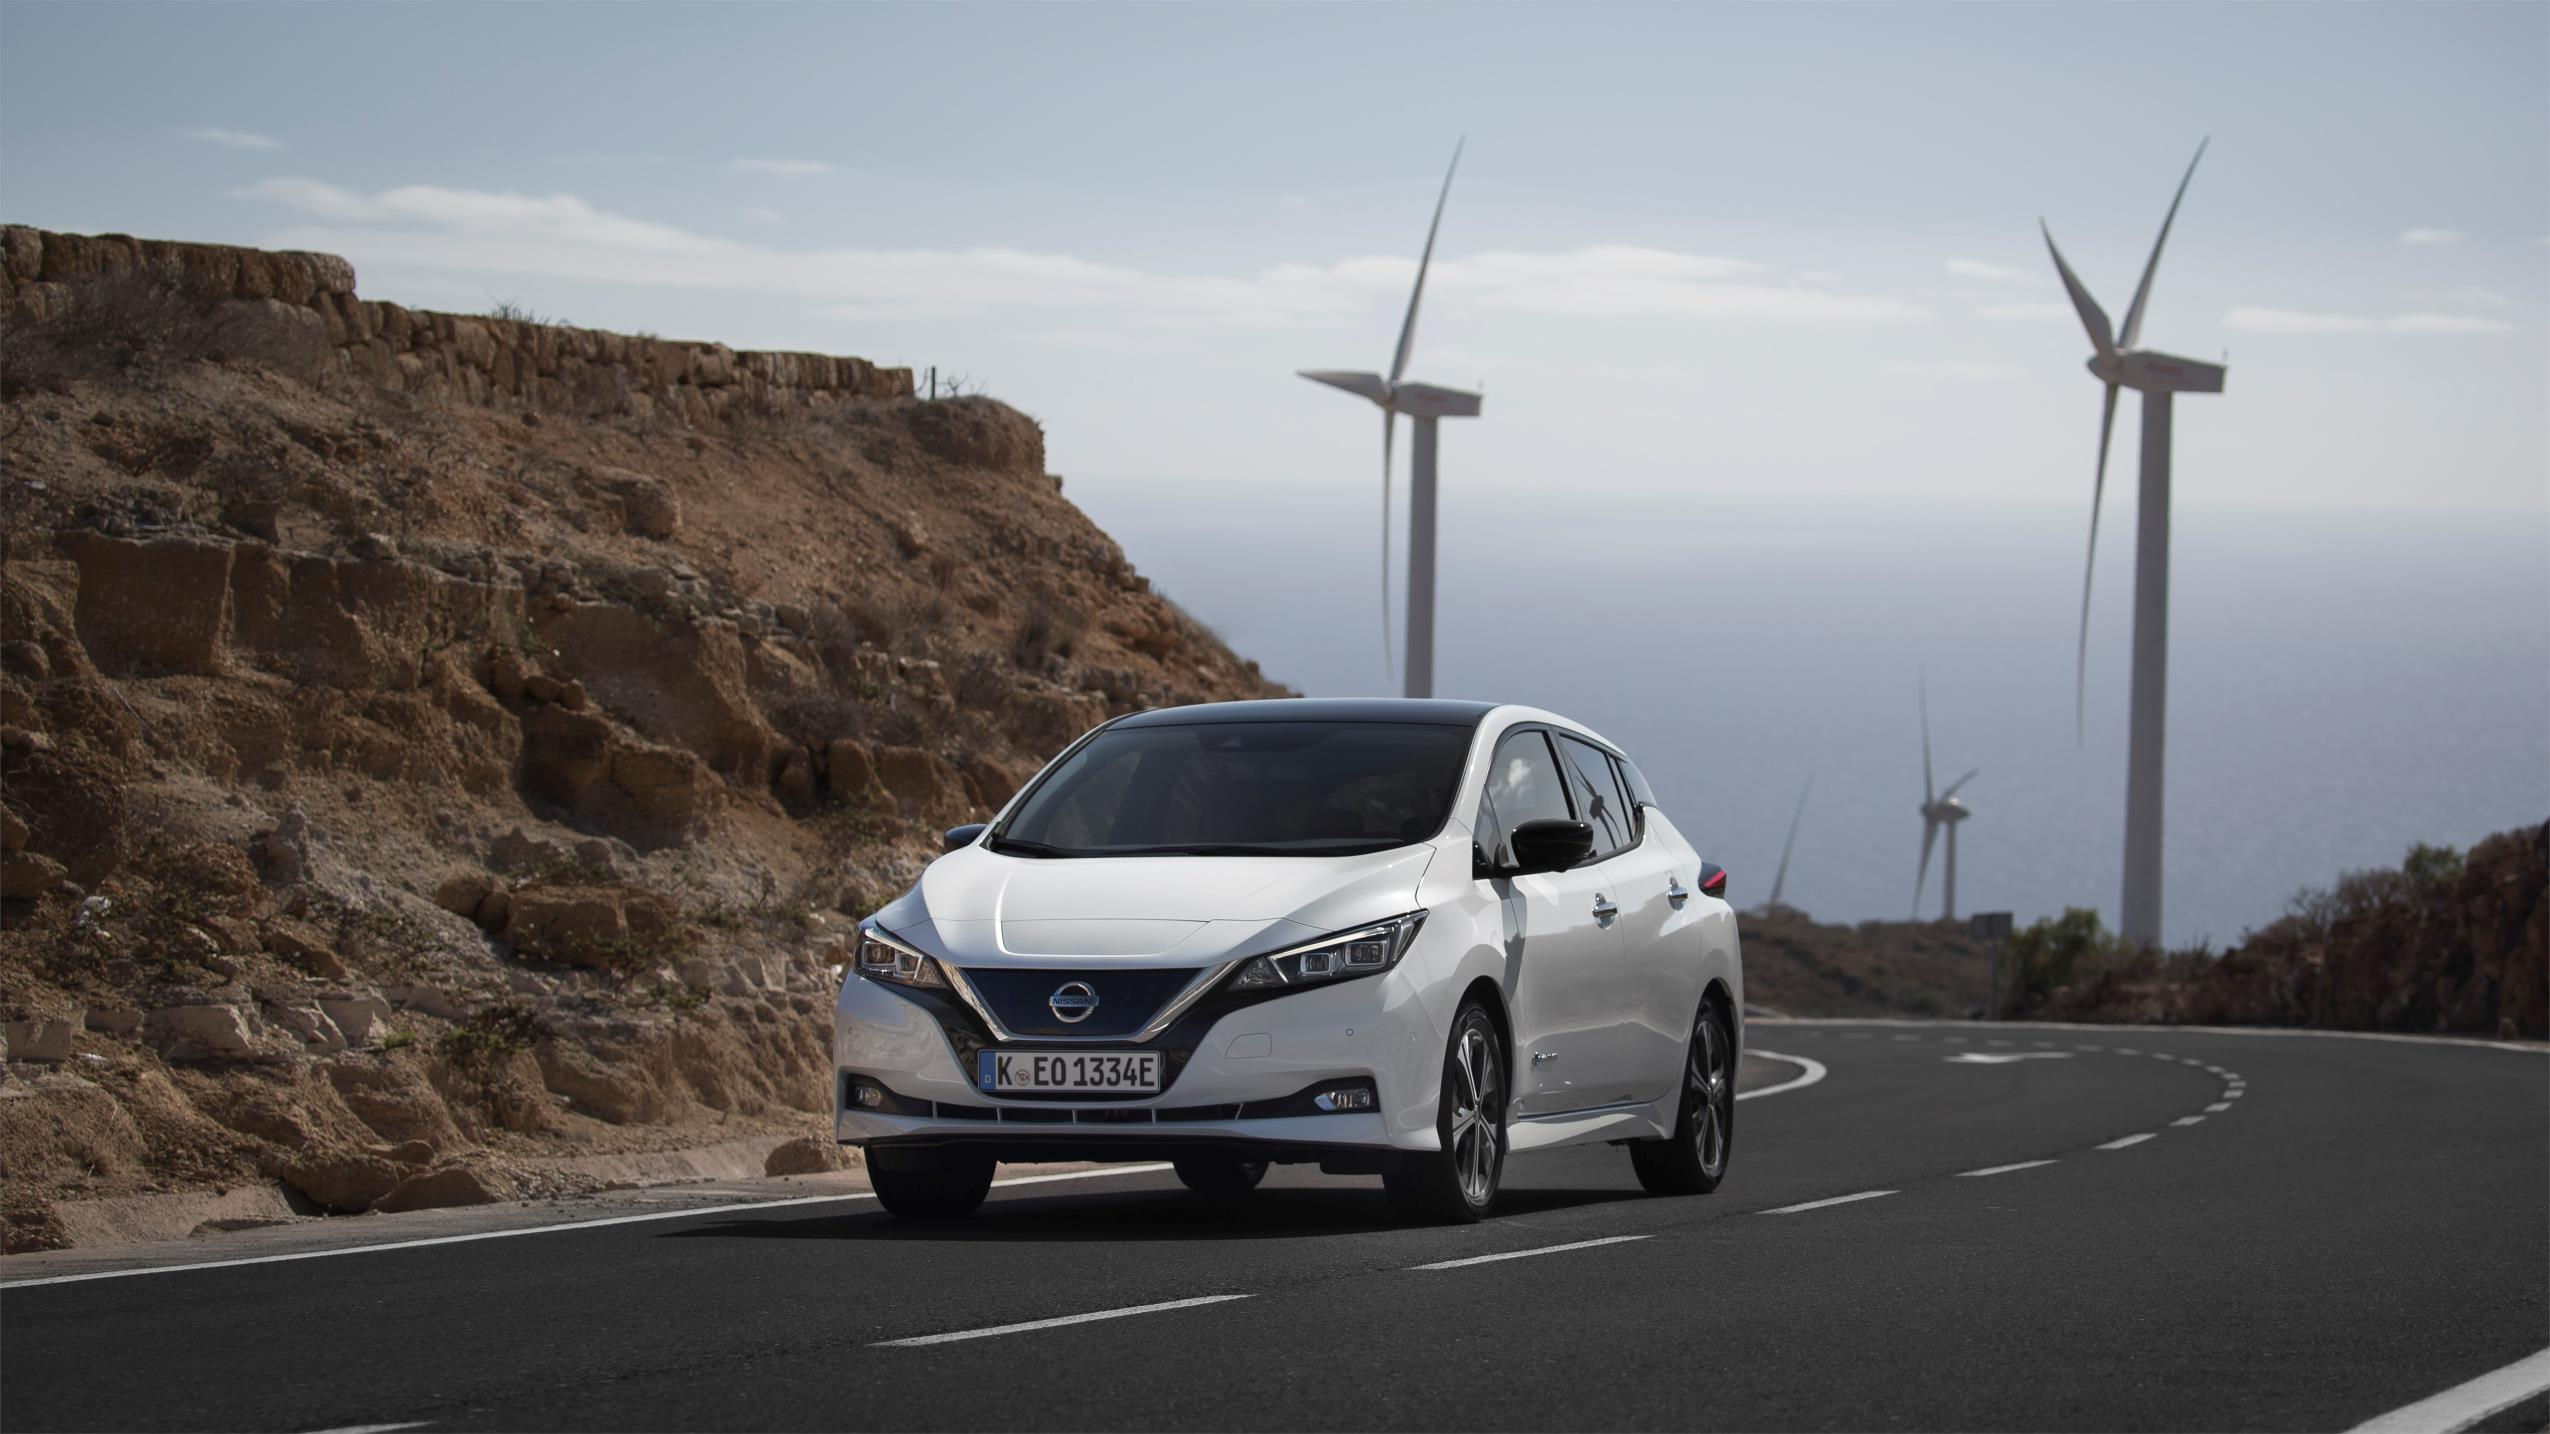 Nissan intelligent mobility vision drives breakthrough announcements at Geneva Motor Show